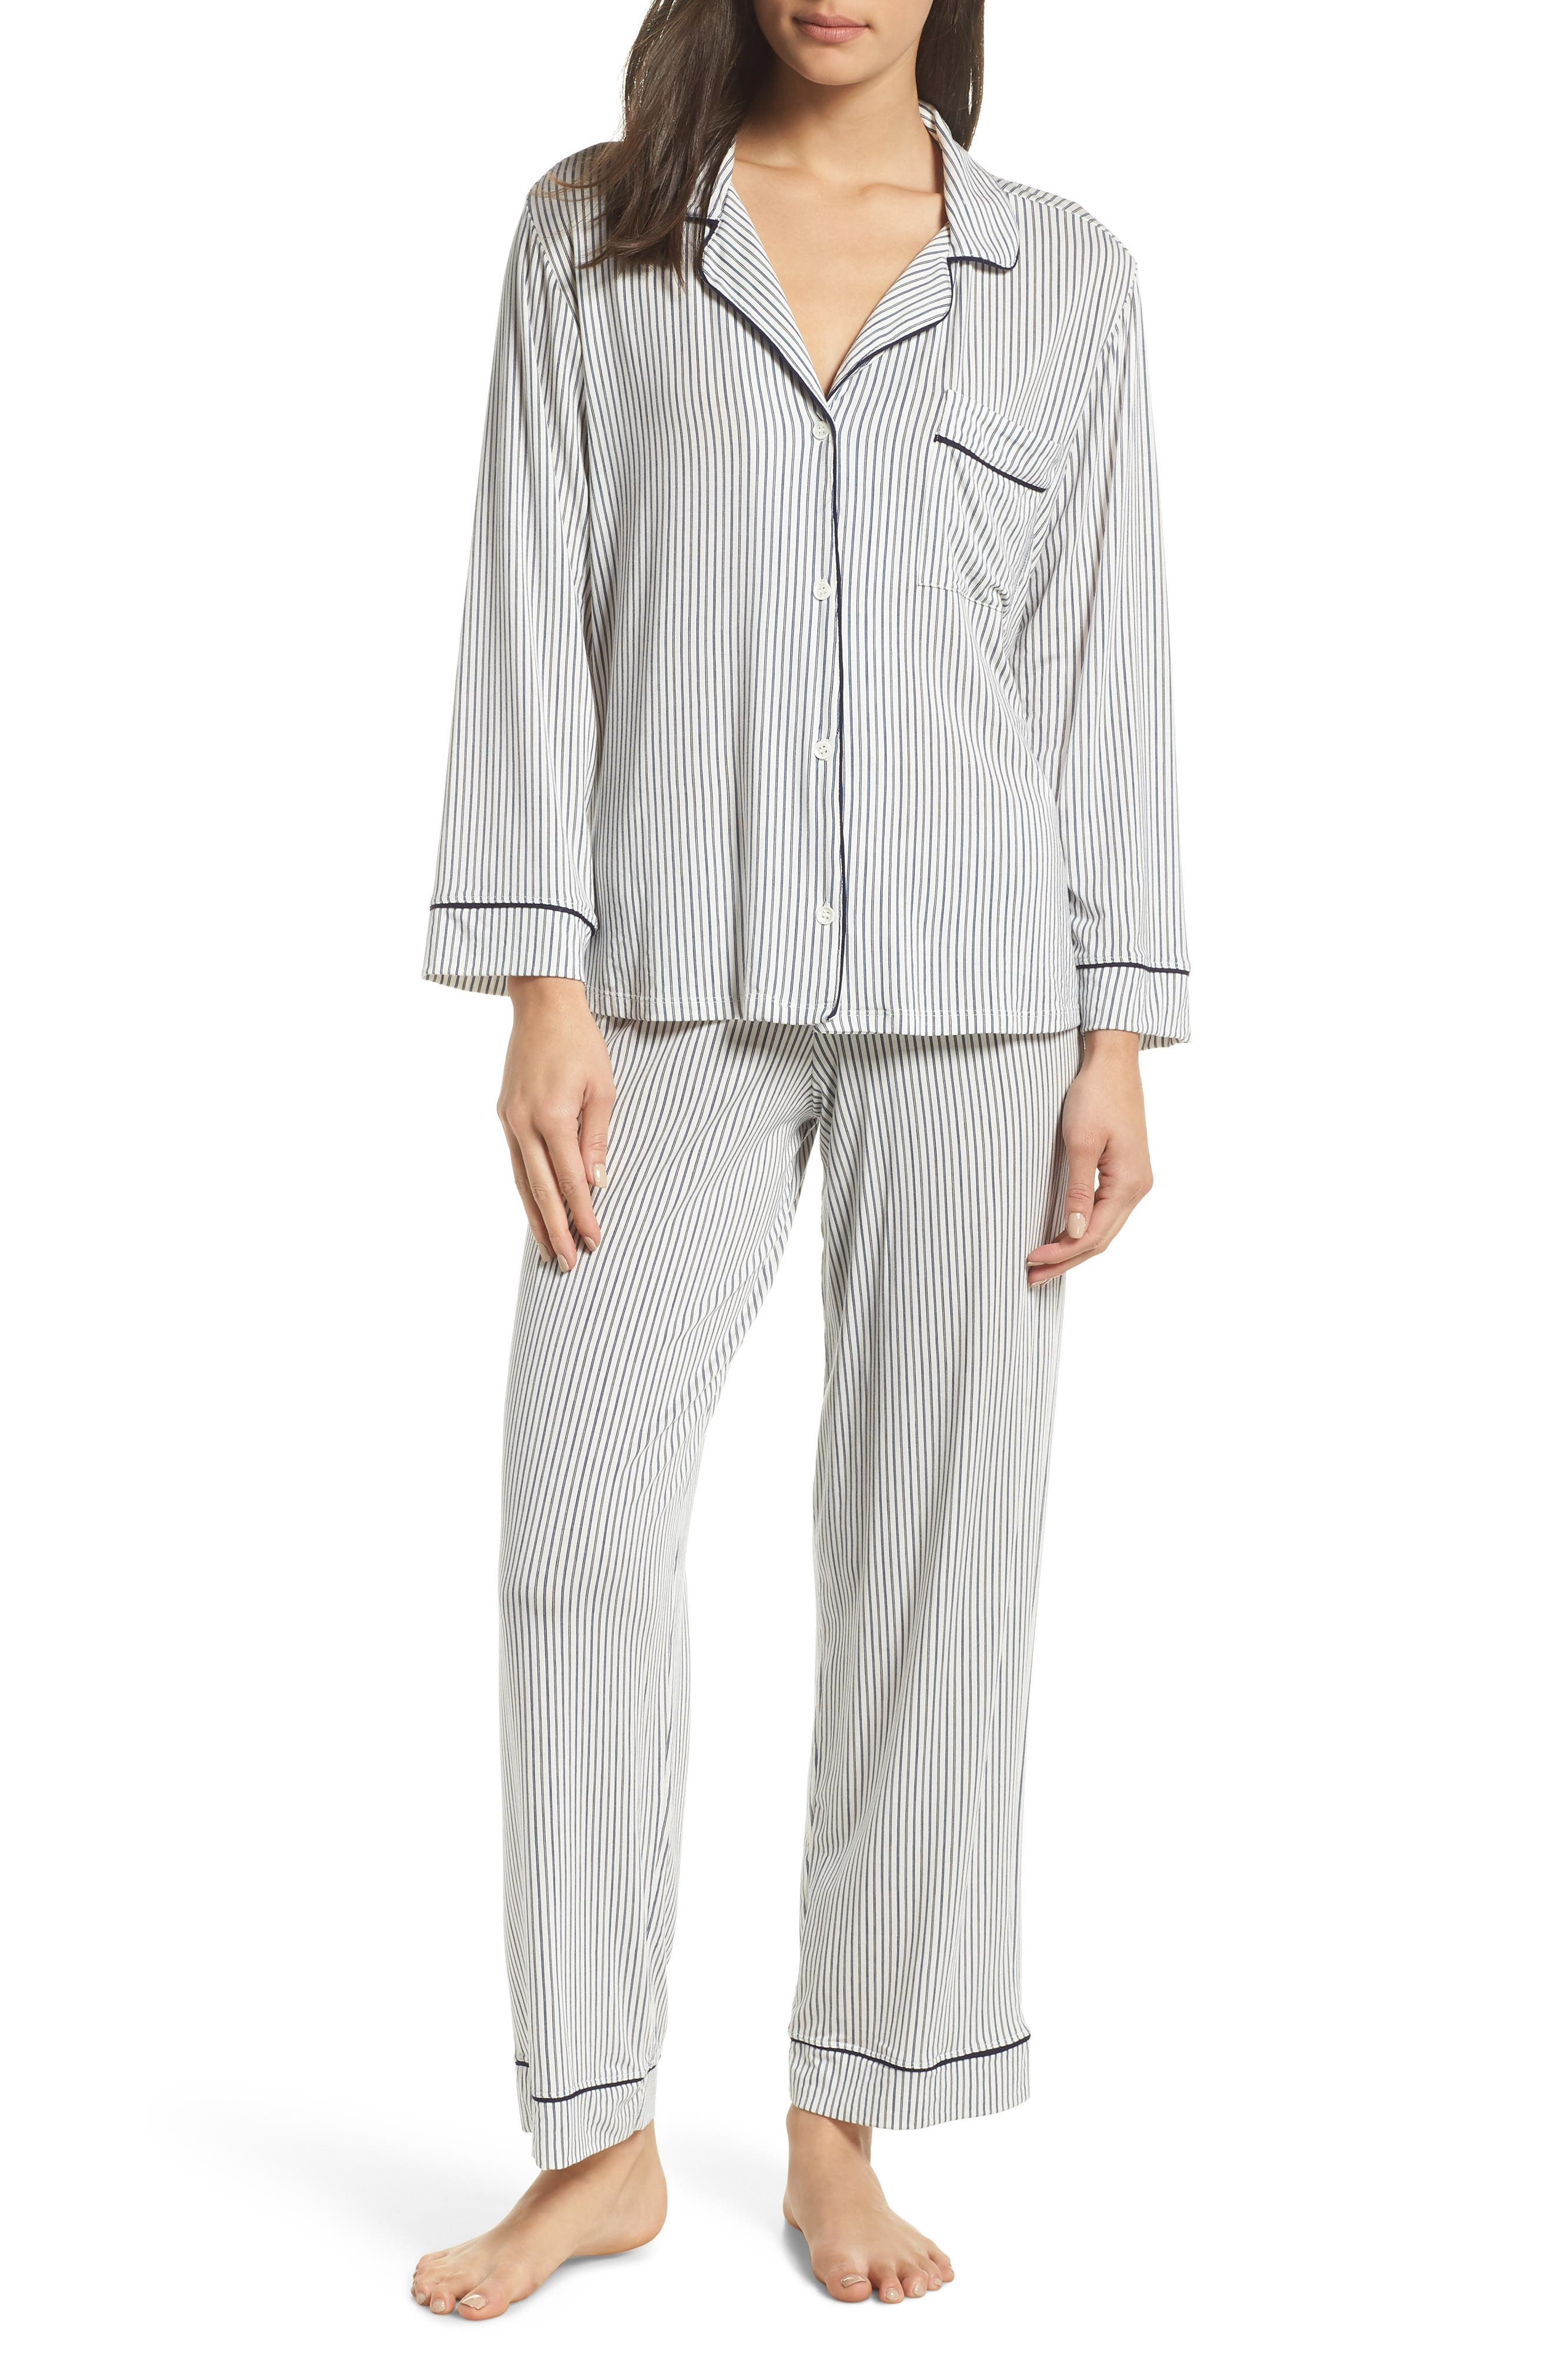 EBERJEY,                             Sleep Chic Pajamas,                             Main thumbnail 1, color,                             NORDIC STRPS/ NORTHERN LIGHTS